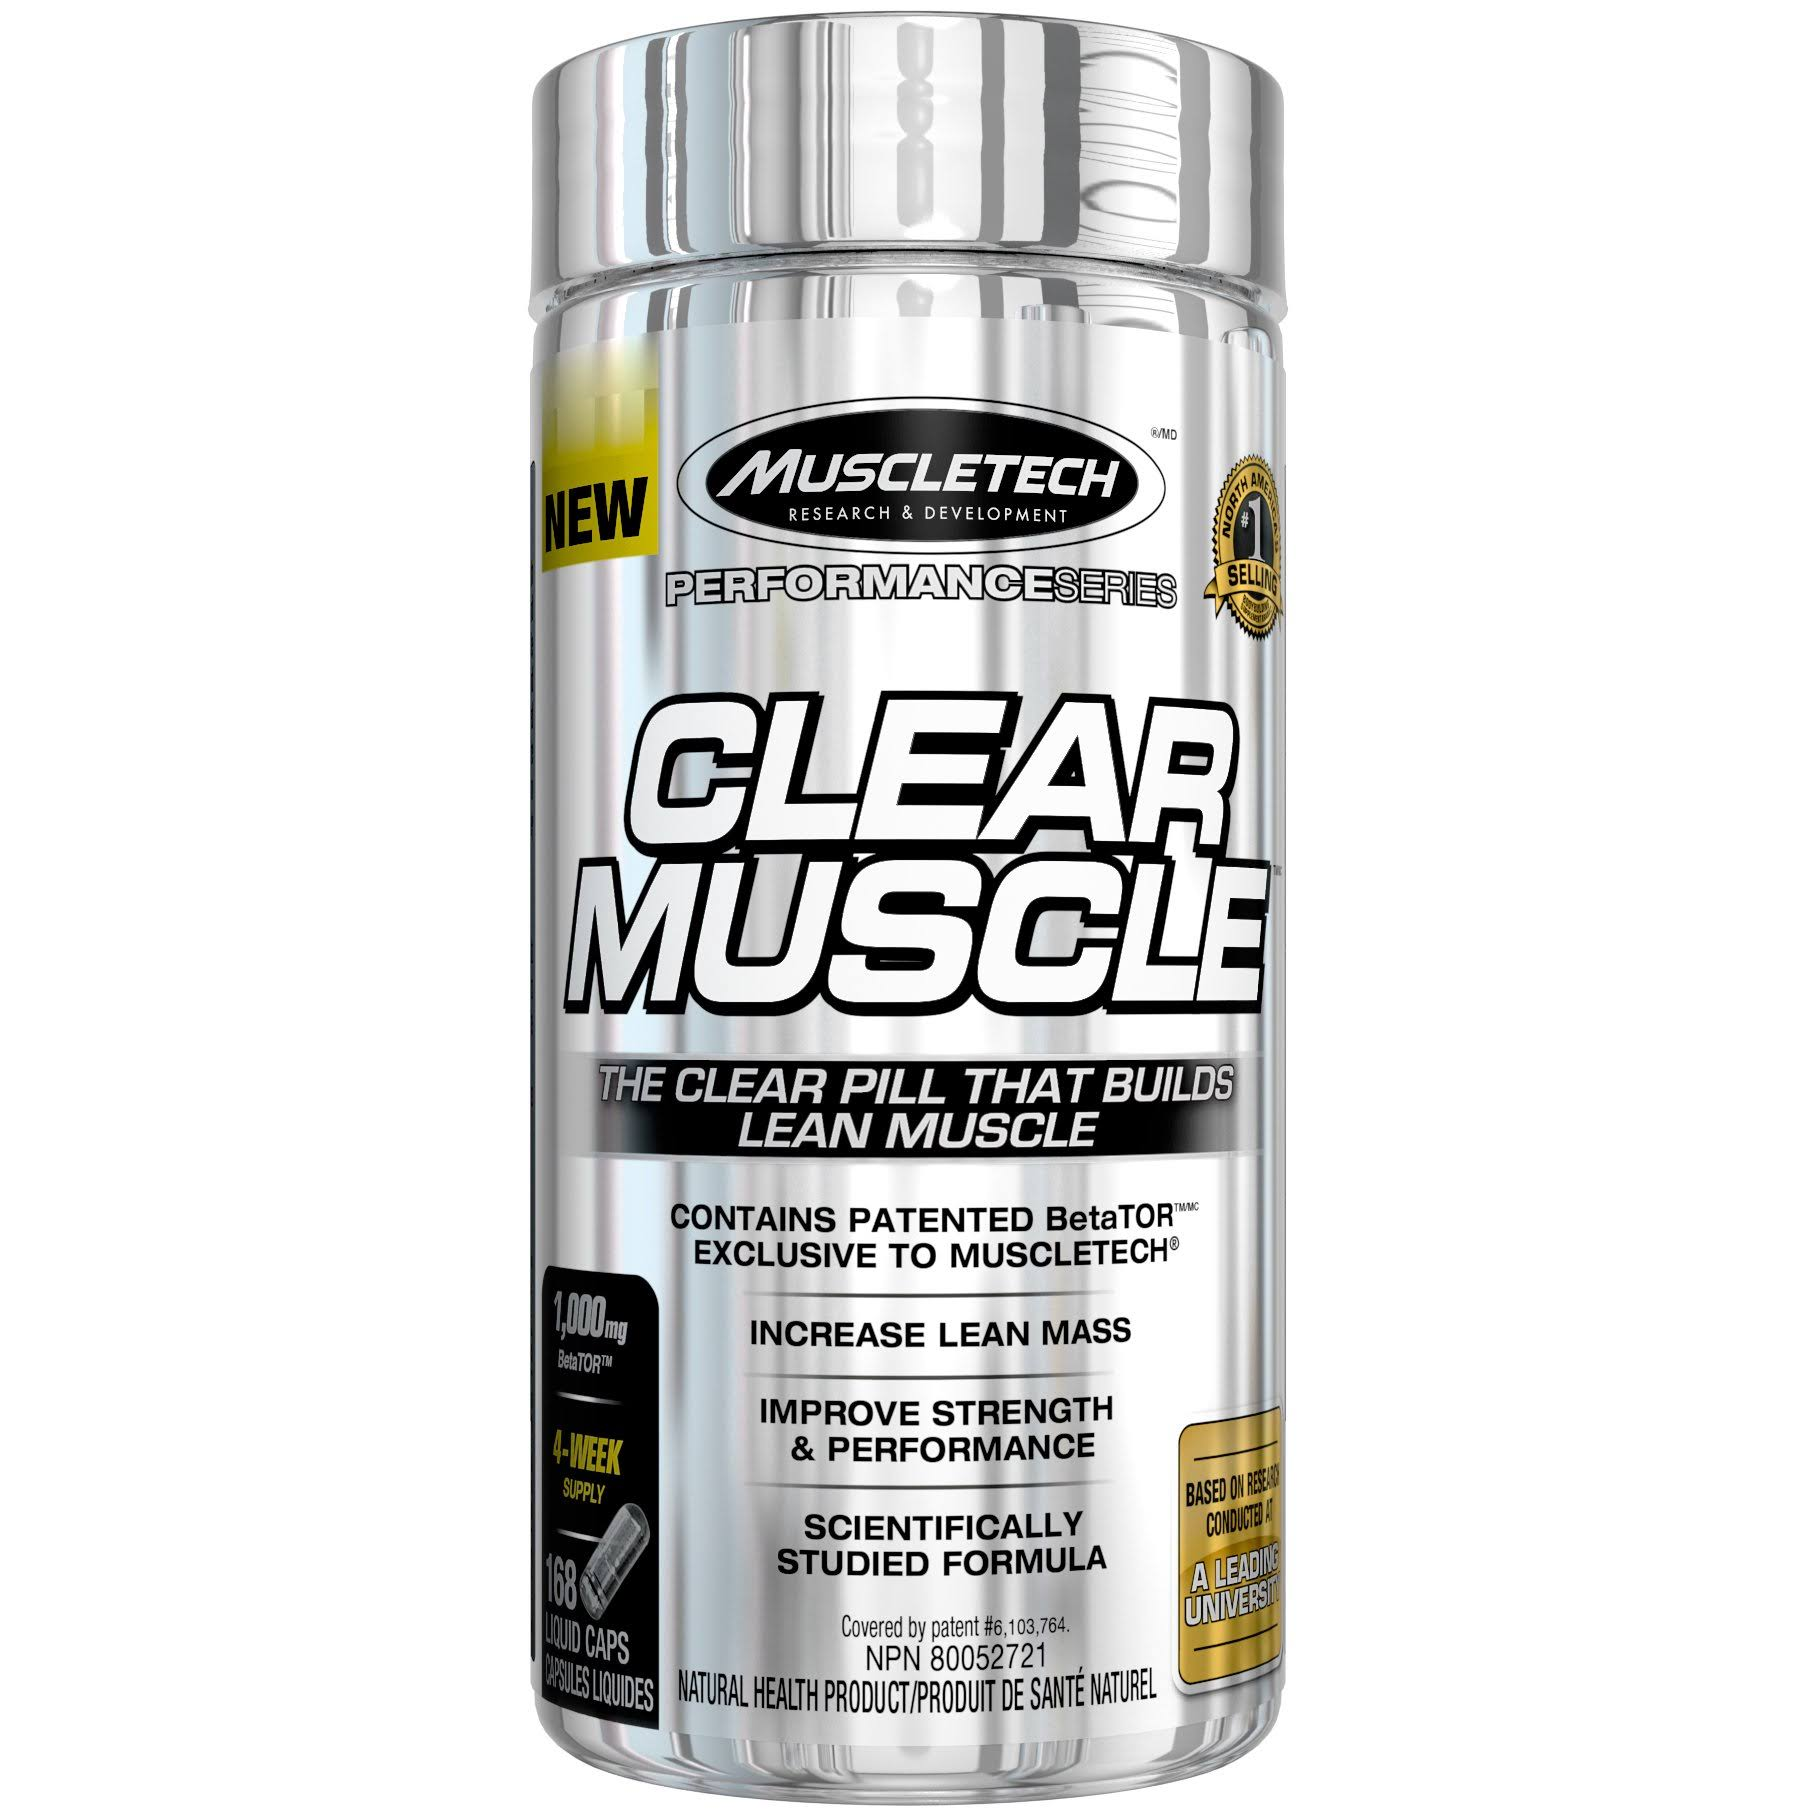 MuscleTech Clear Muscle Sports Supplement - 168 Capsules